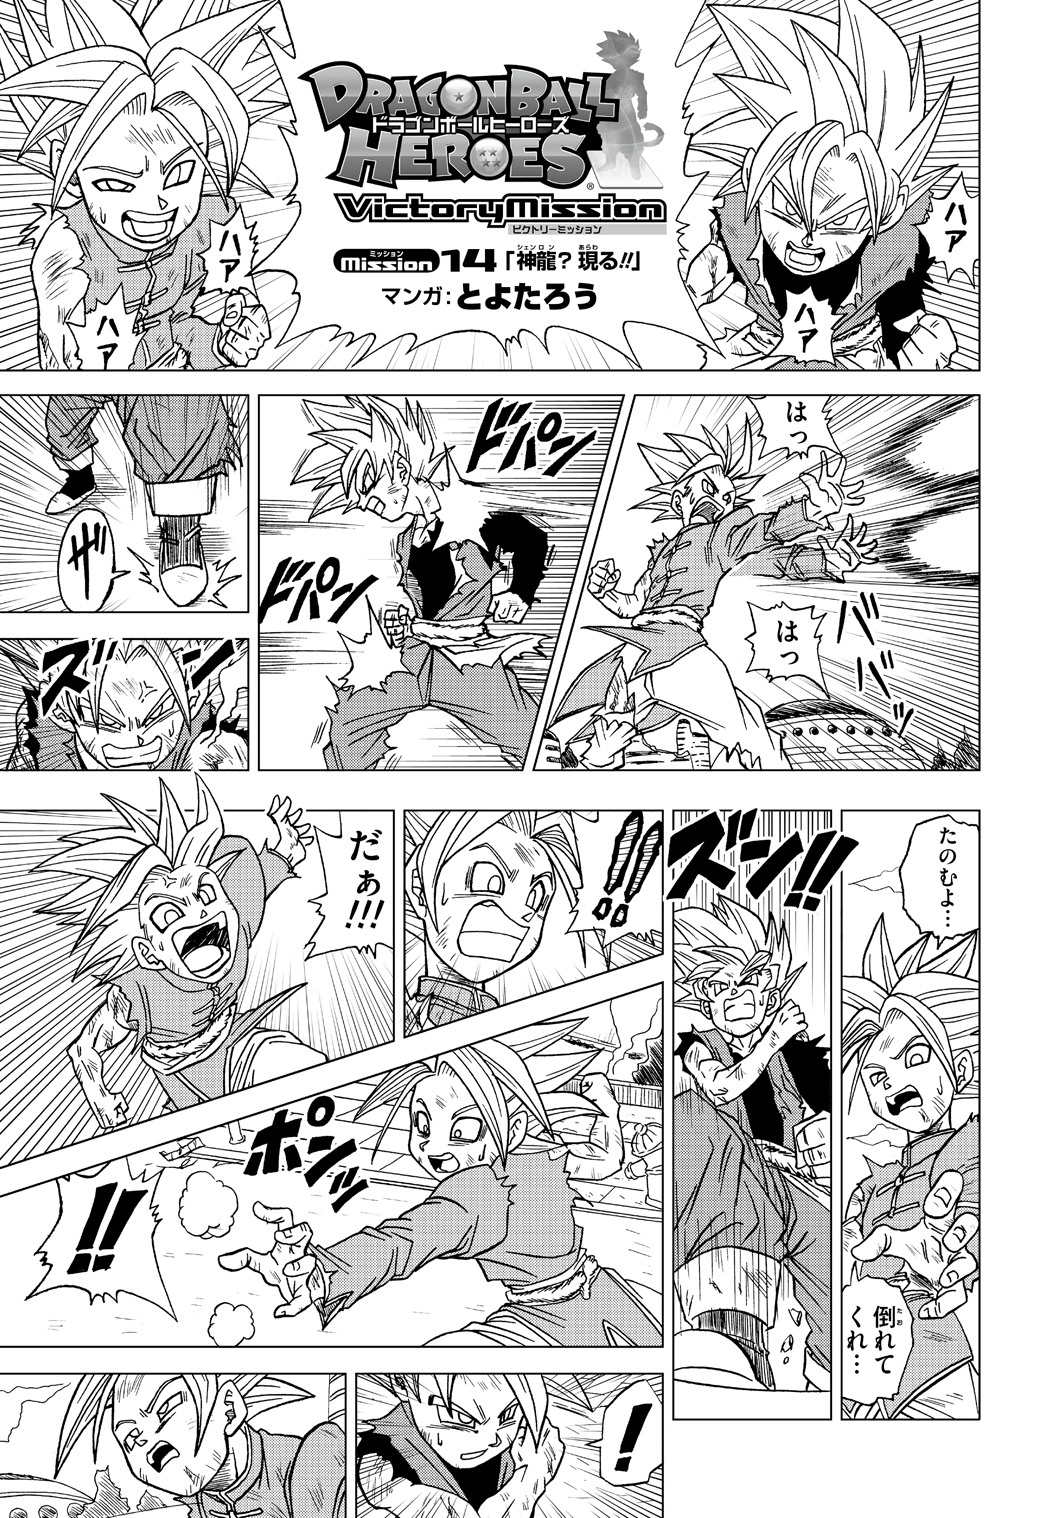 Dragon Ball Heroes Victory Mission Chapitre 014